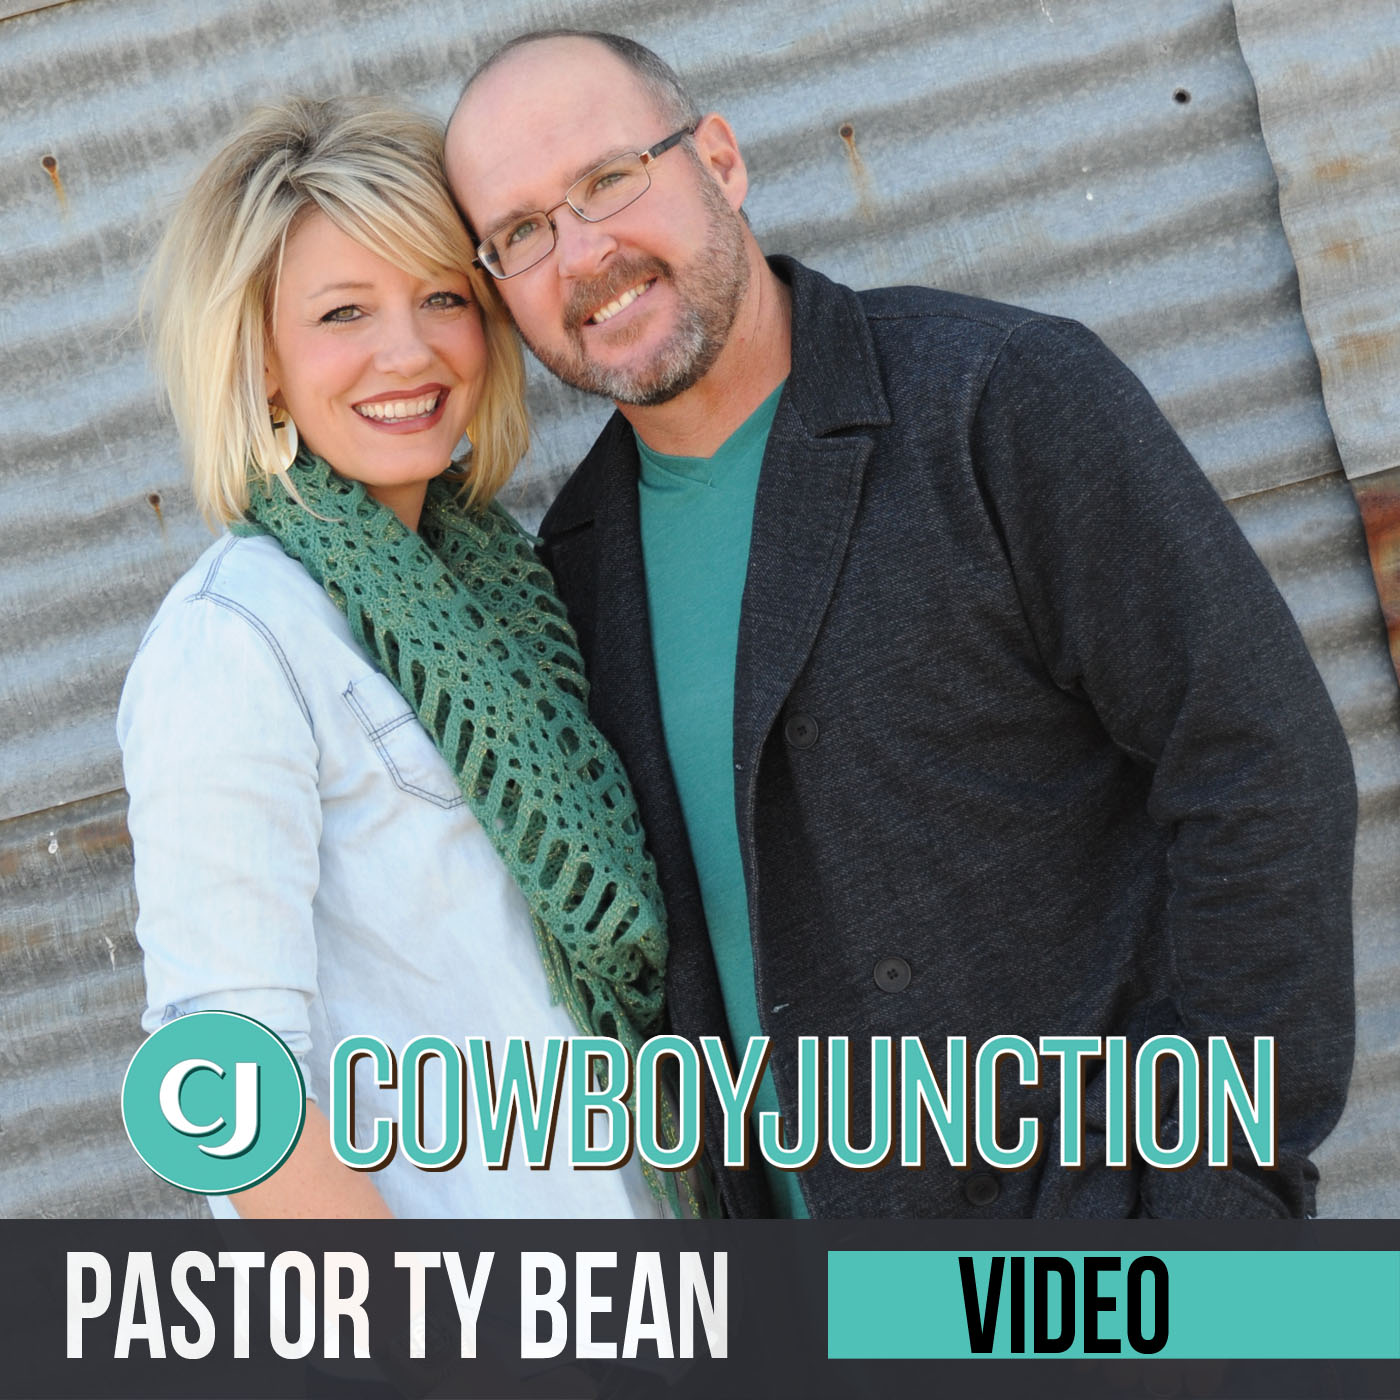 Cowboy Junction Church Video